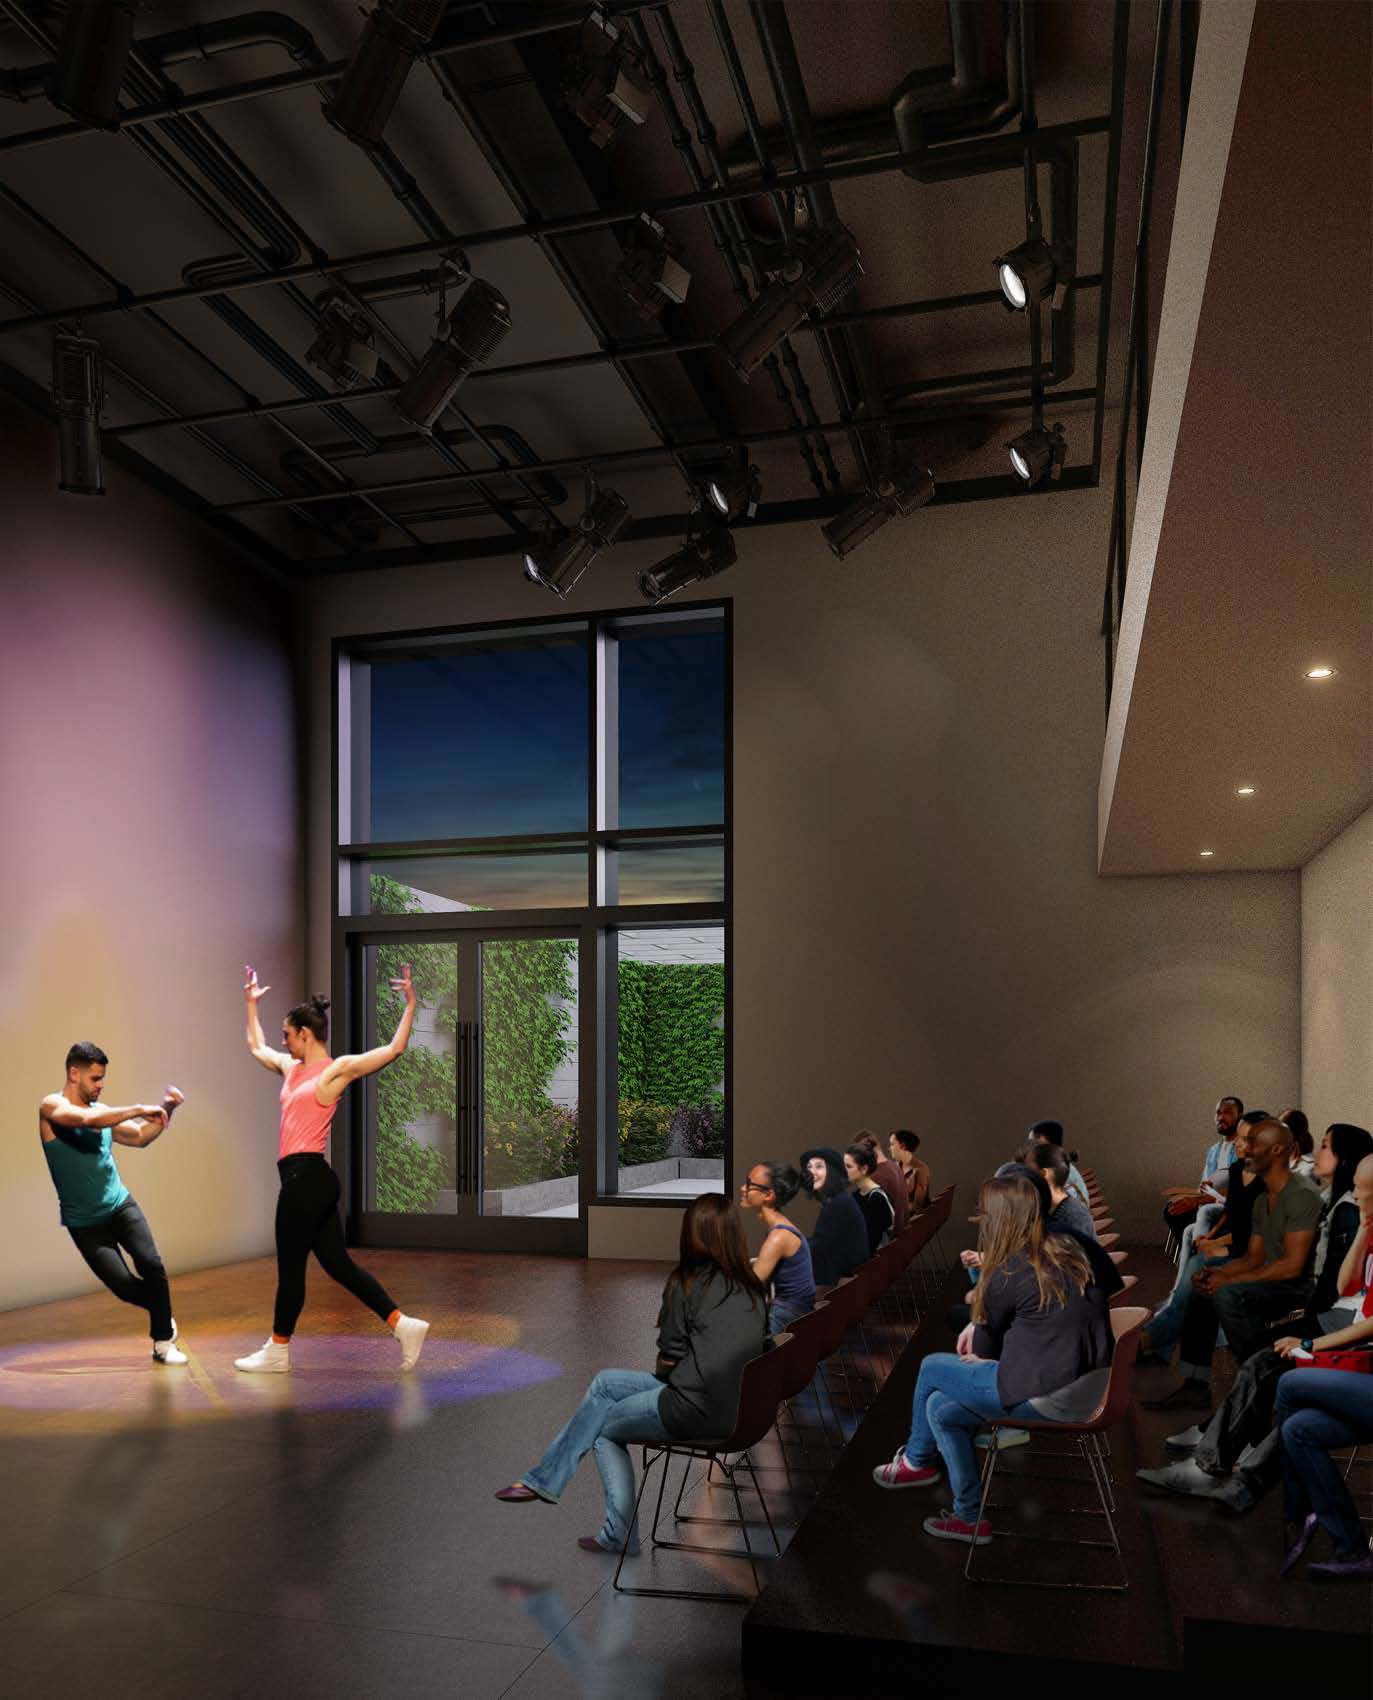 The new flex space at 74a East 4th Street for evening performances